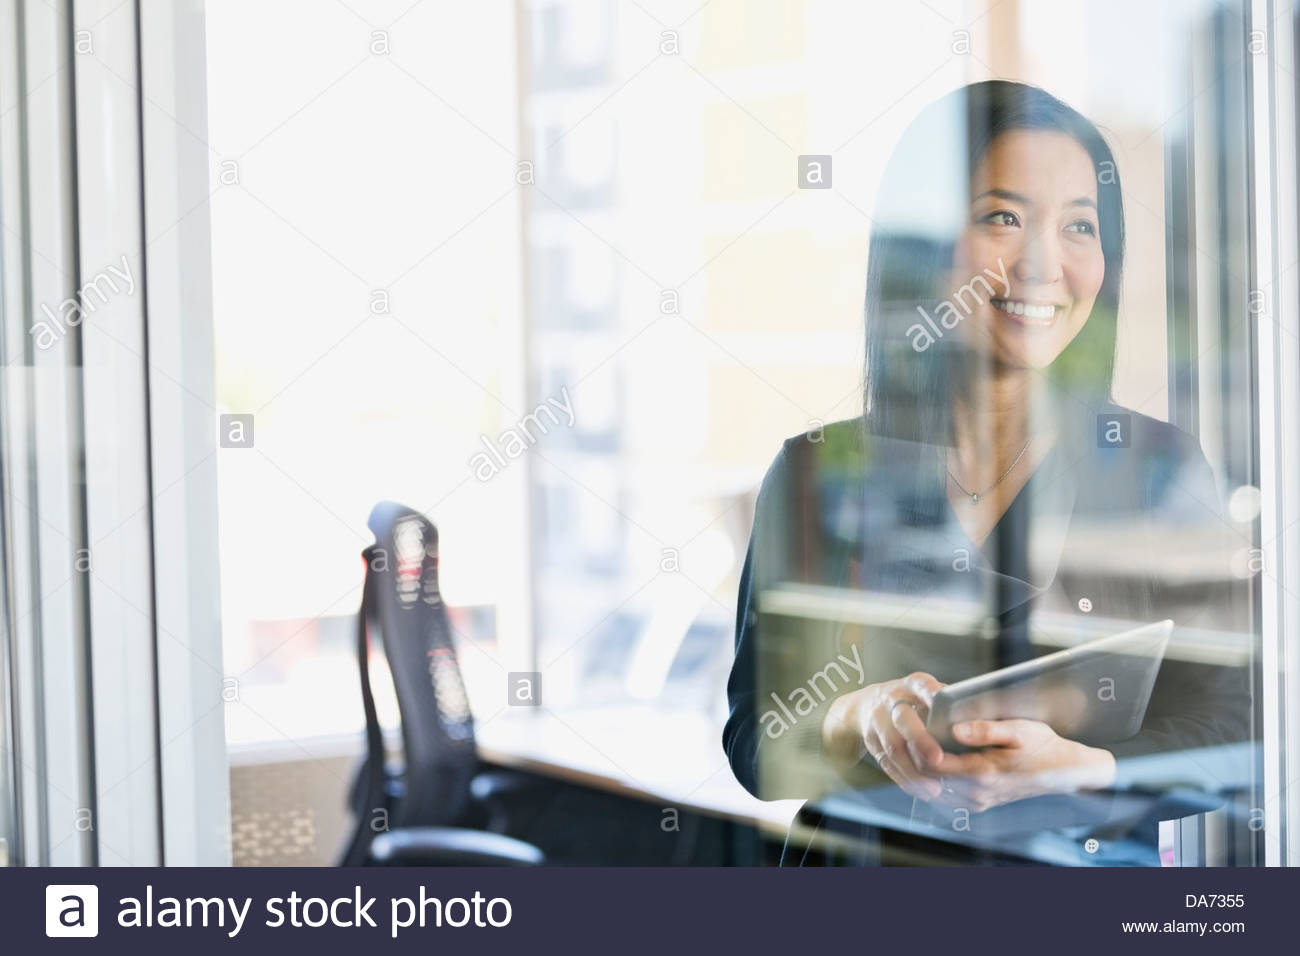 Smiling businesswoman with digital tablet in office Photo Stock